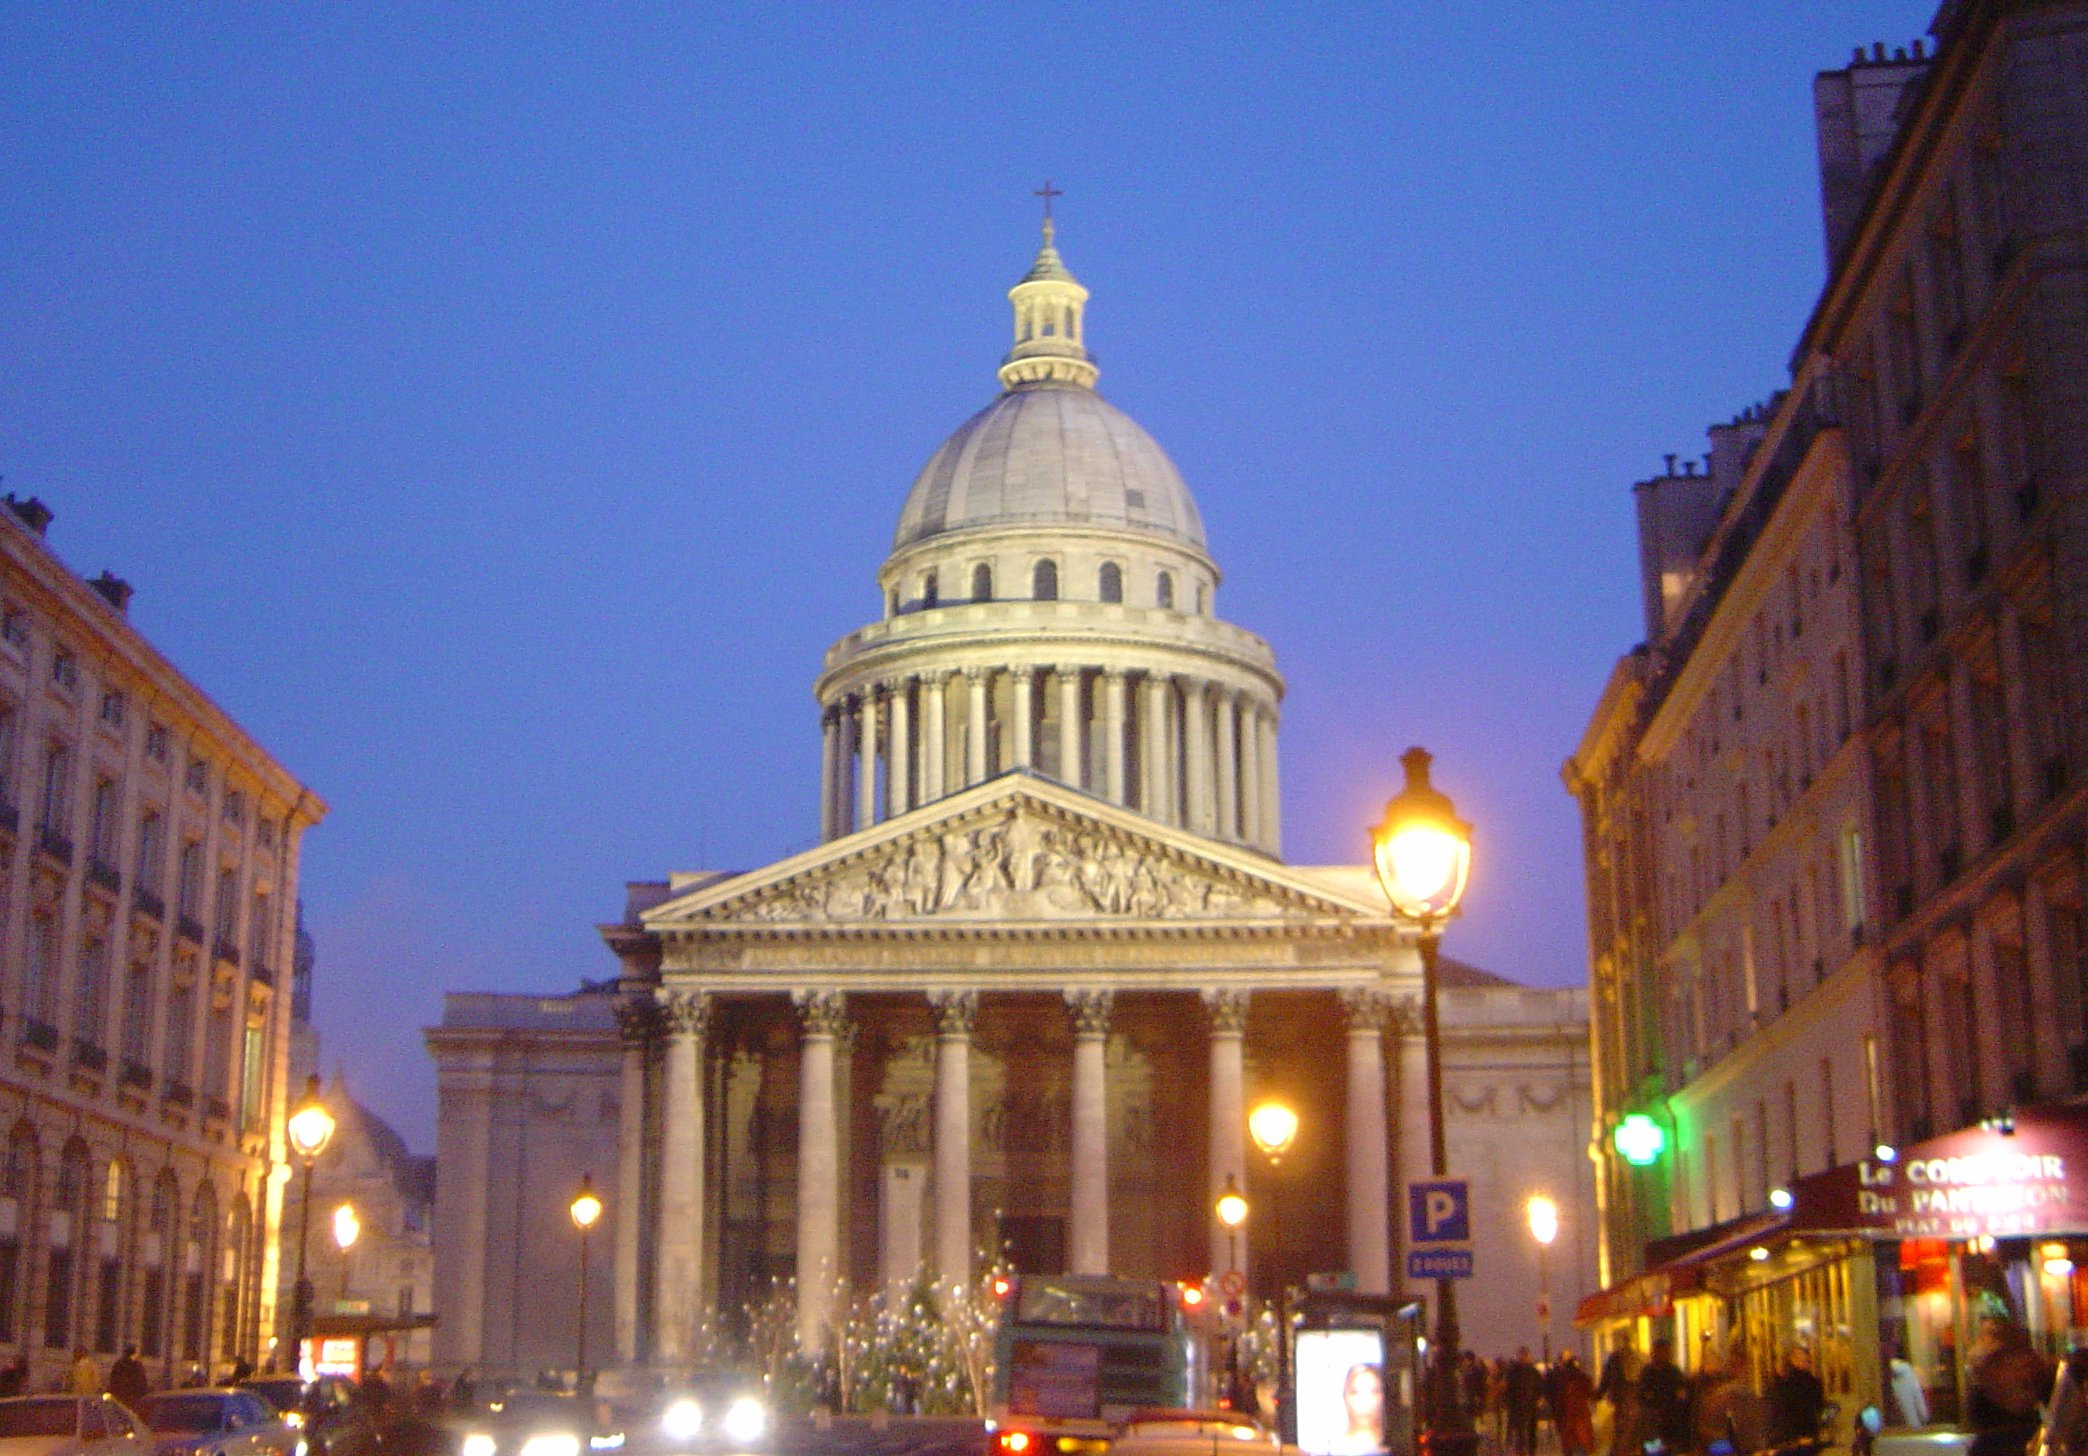 Paris_Pantheon_at_night_DSC09526